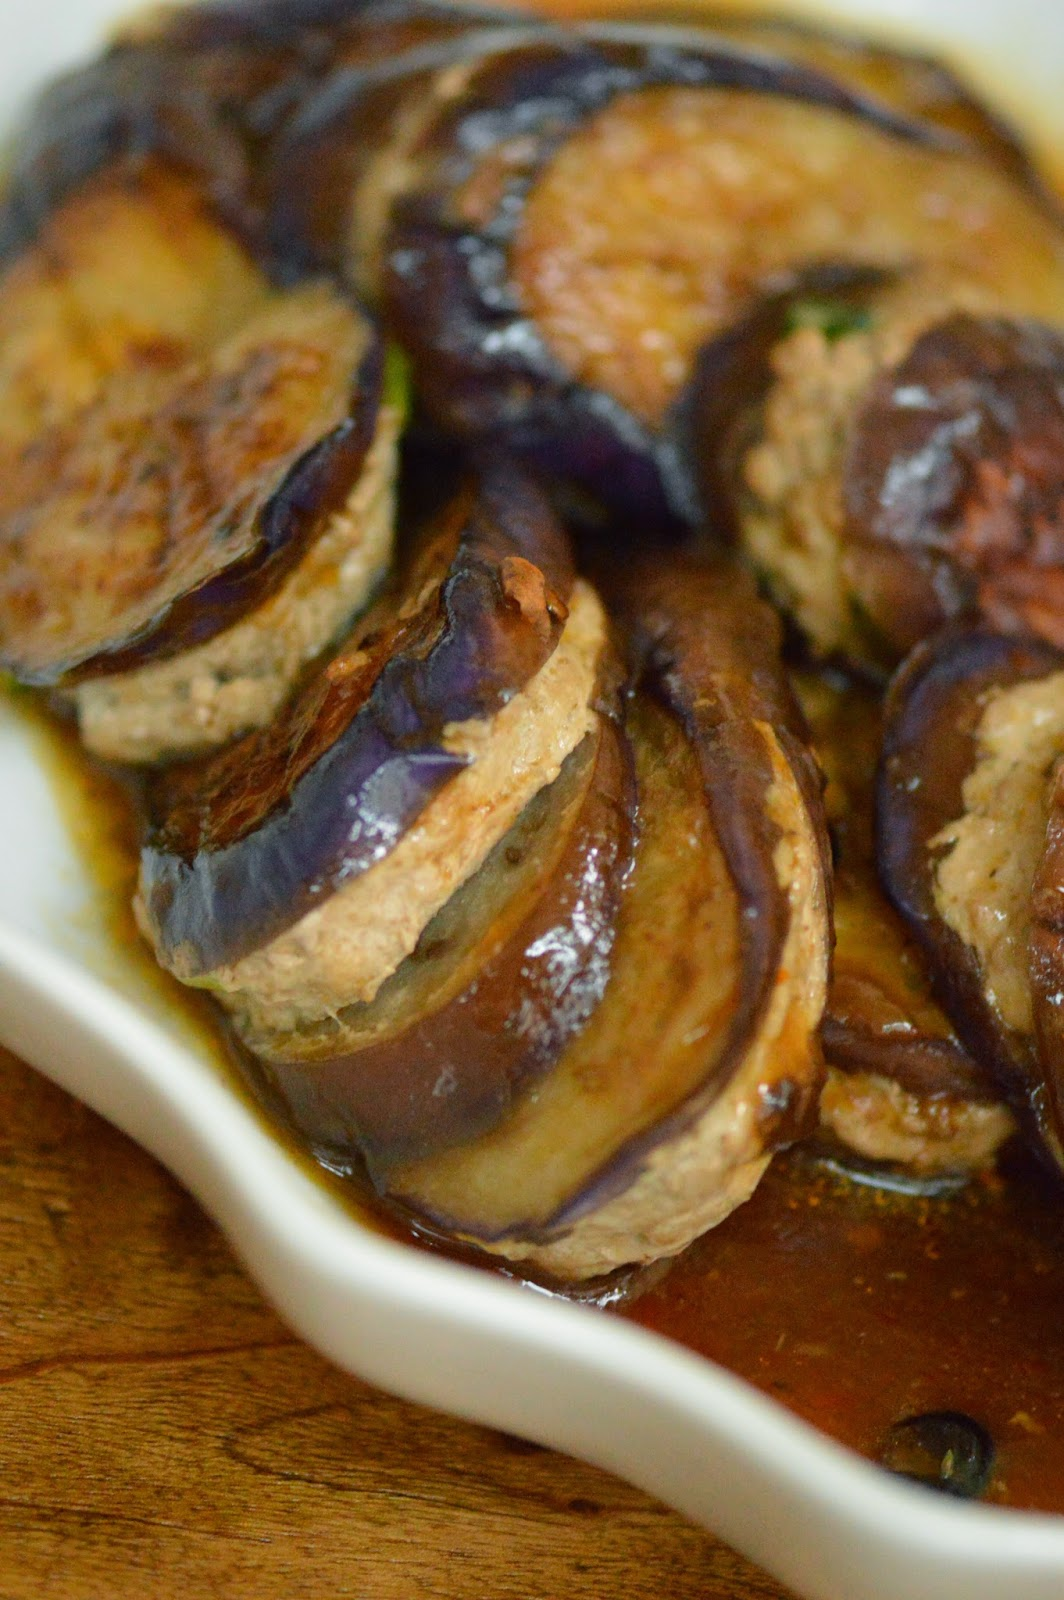 Dimsumptuous Chinese Stuffed Eggplant 煎釀茄子